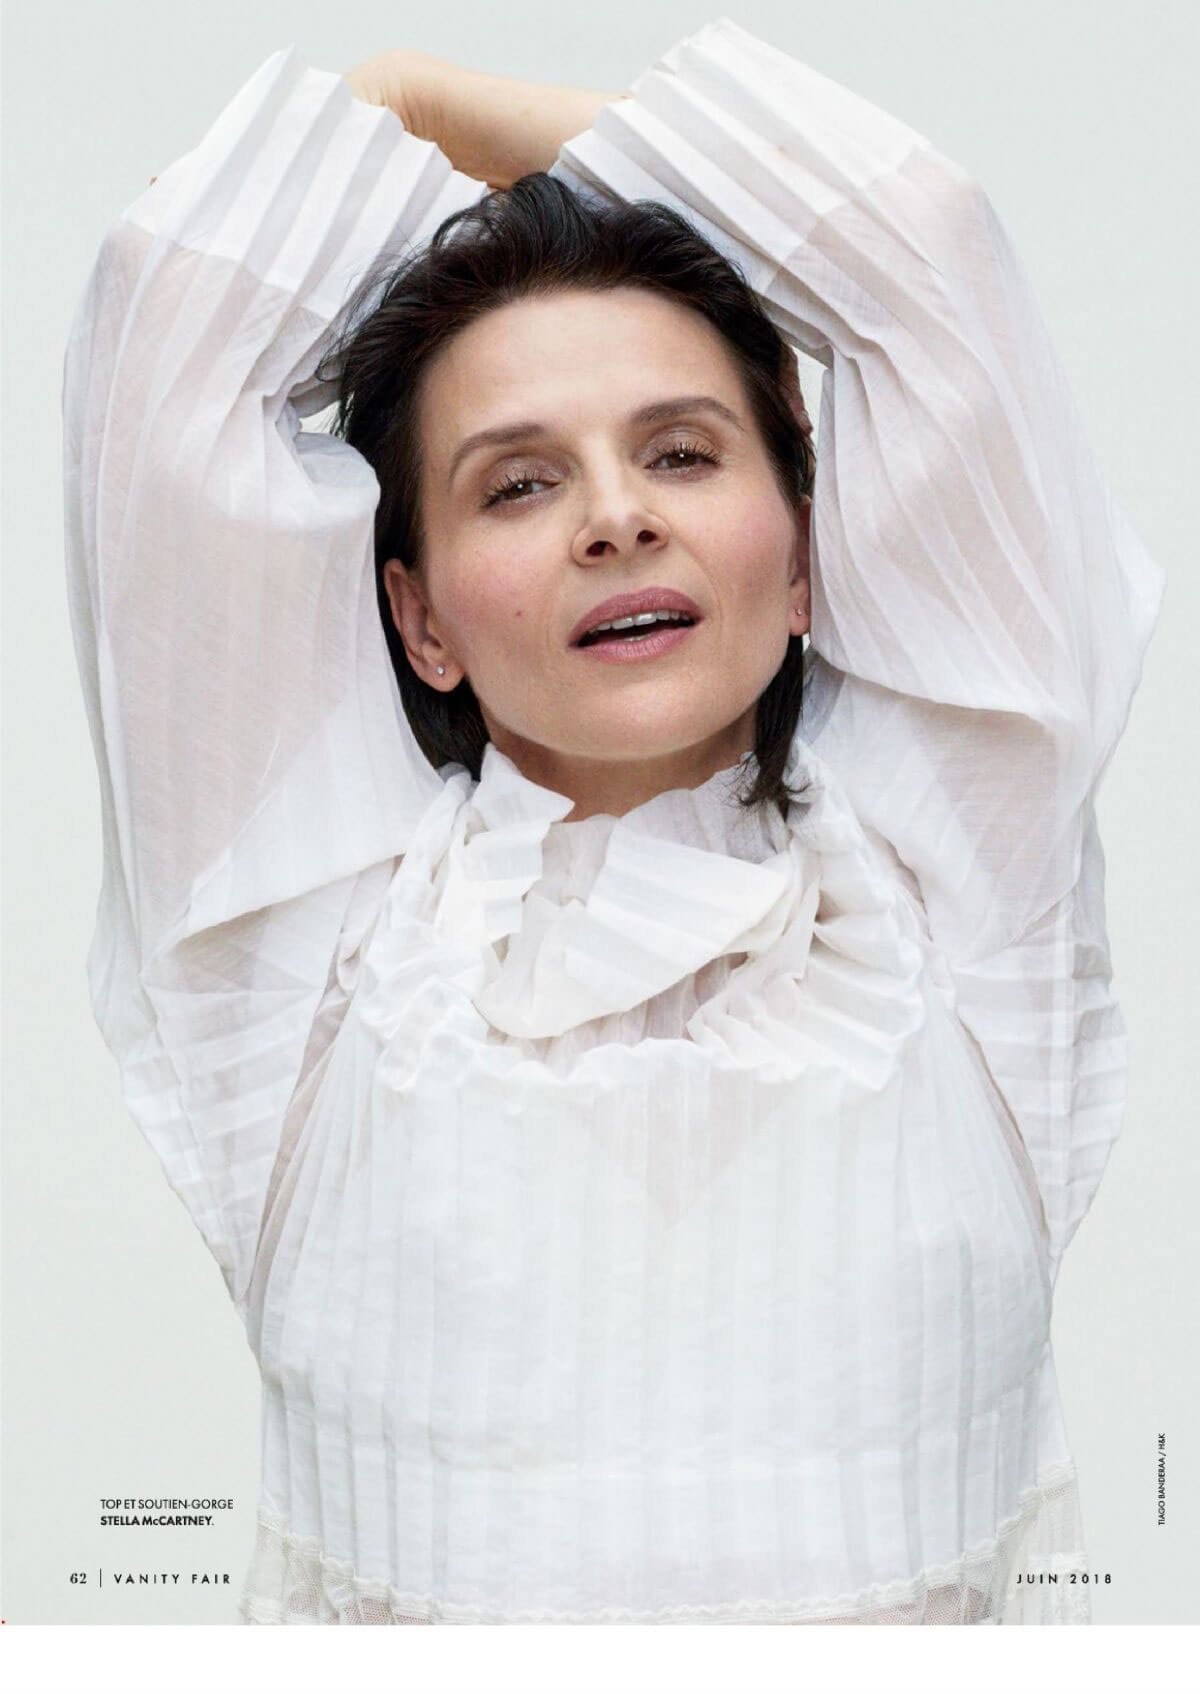 Juliette Binoche Stills in Vanity Fair Magazine, France June 2018 Issue 1